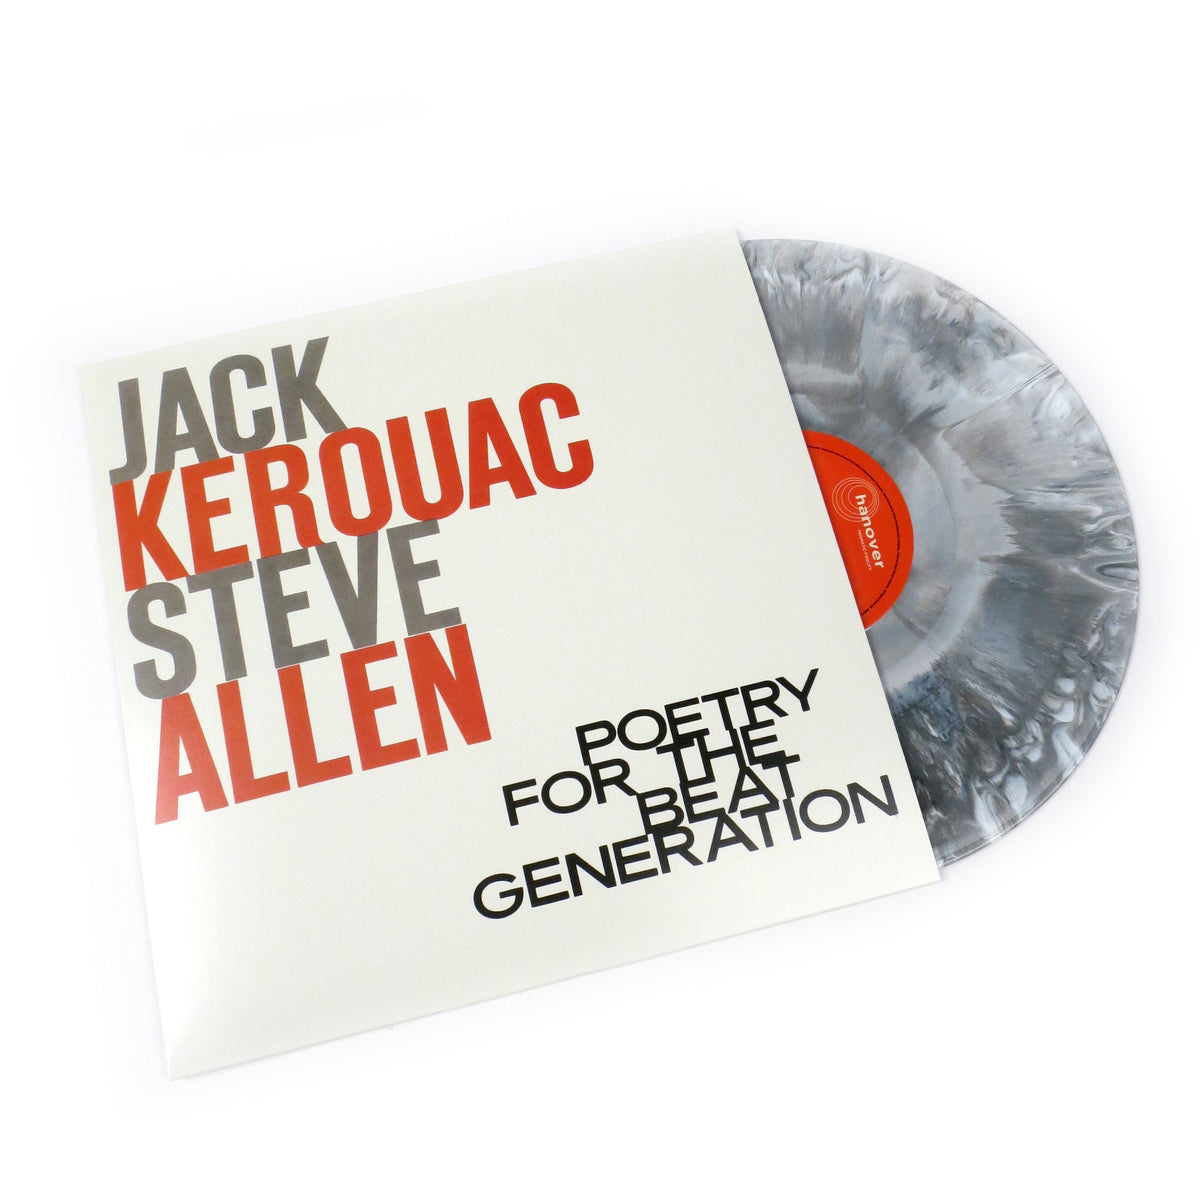 Jack Kerouac & Steve Allen: Poetry for the Beat Generation (Colored Vinyl) Vinyl LP